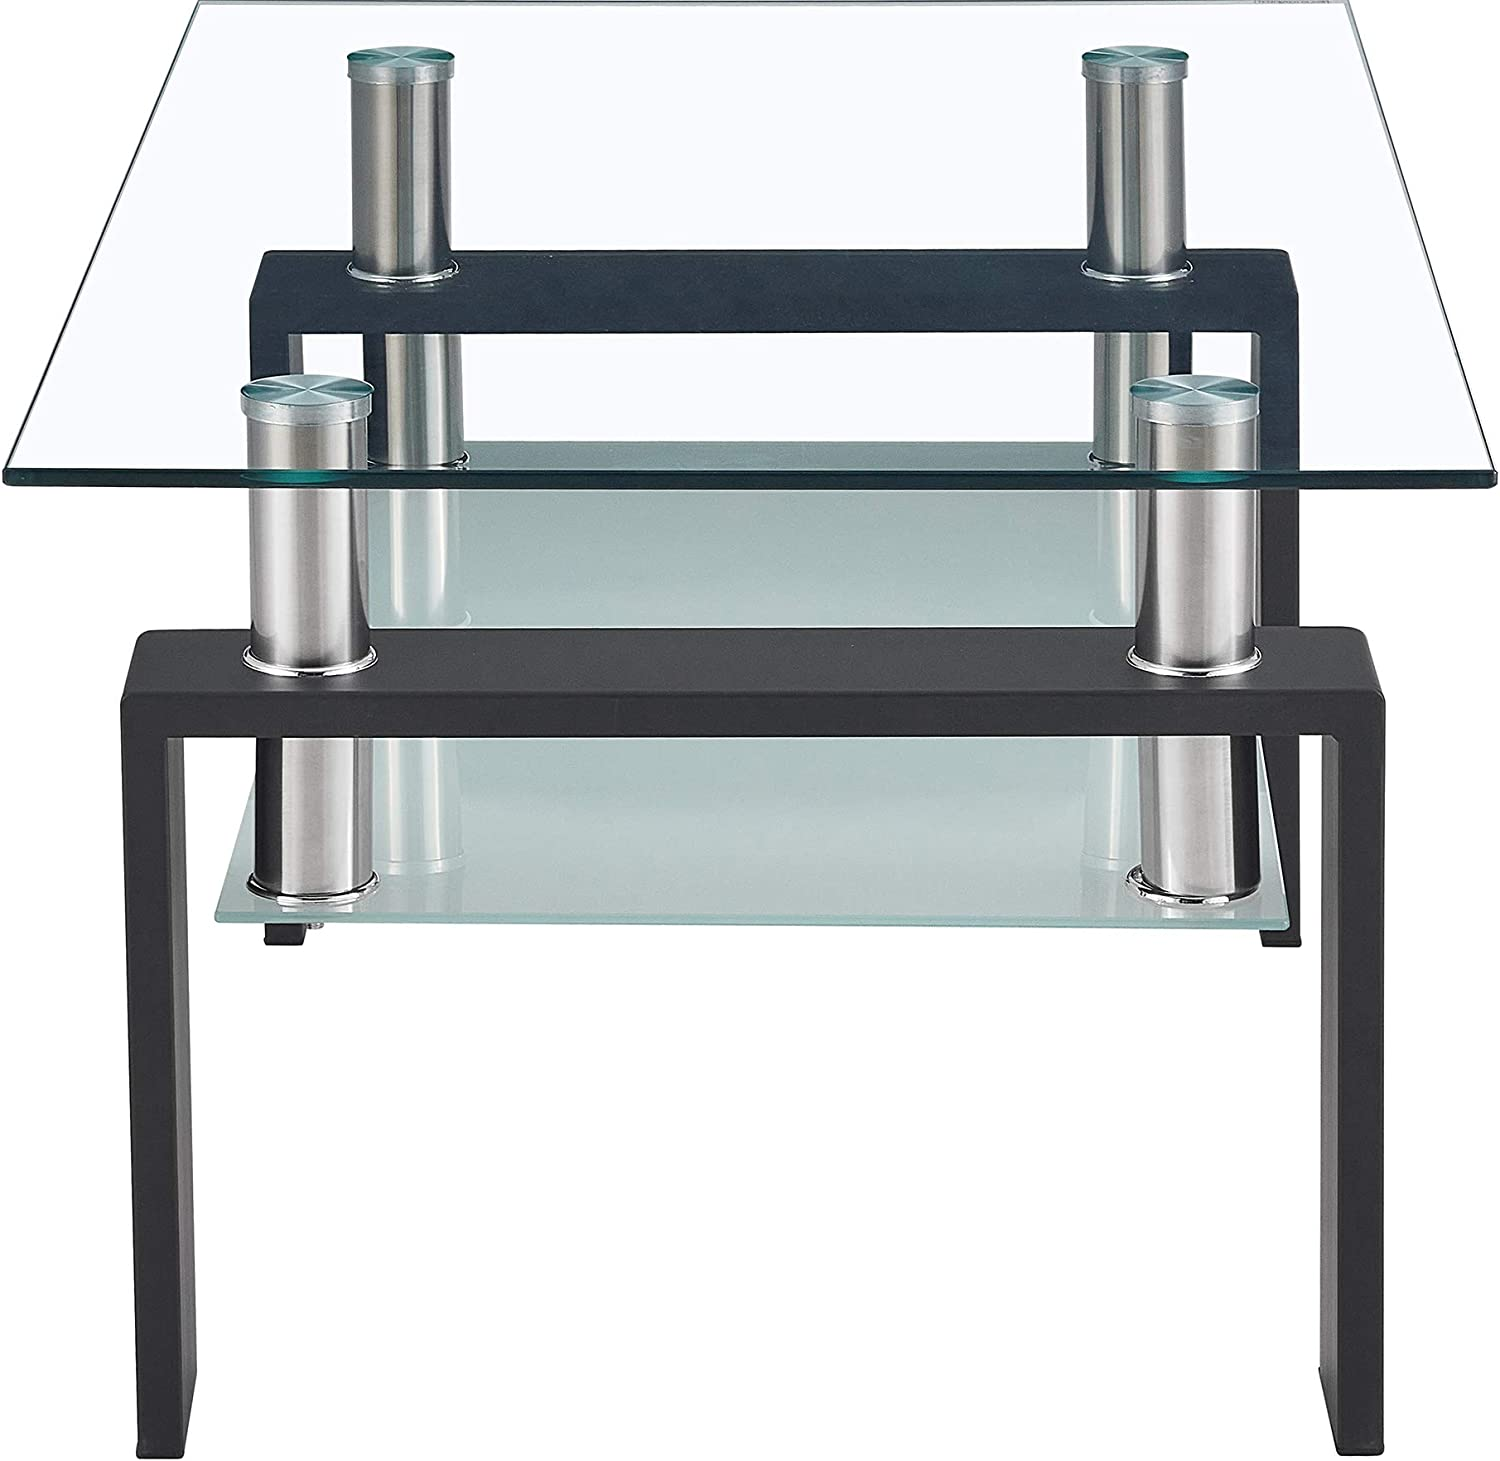 Hendont Tempered Glass Table Coffee Square Max 46% OFF Black Tab Max 65% OFF